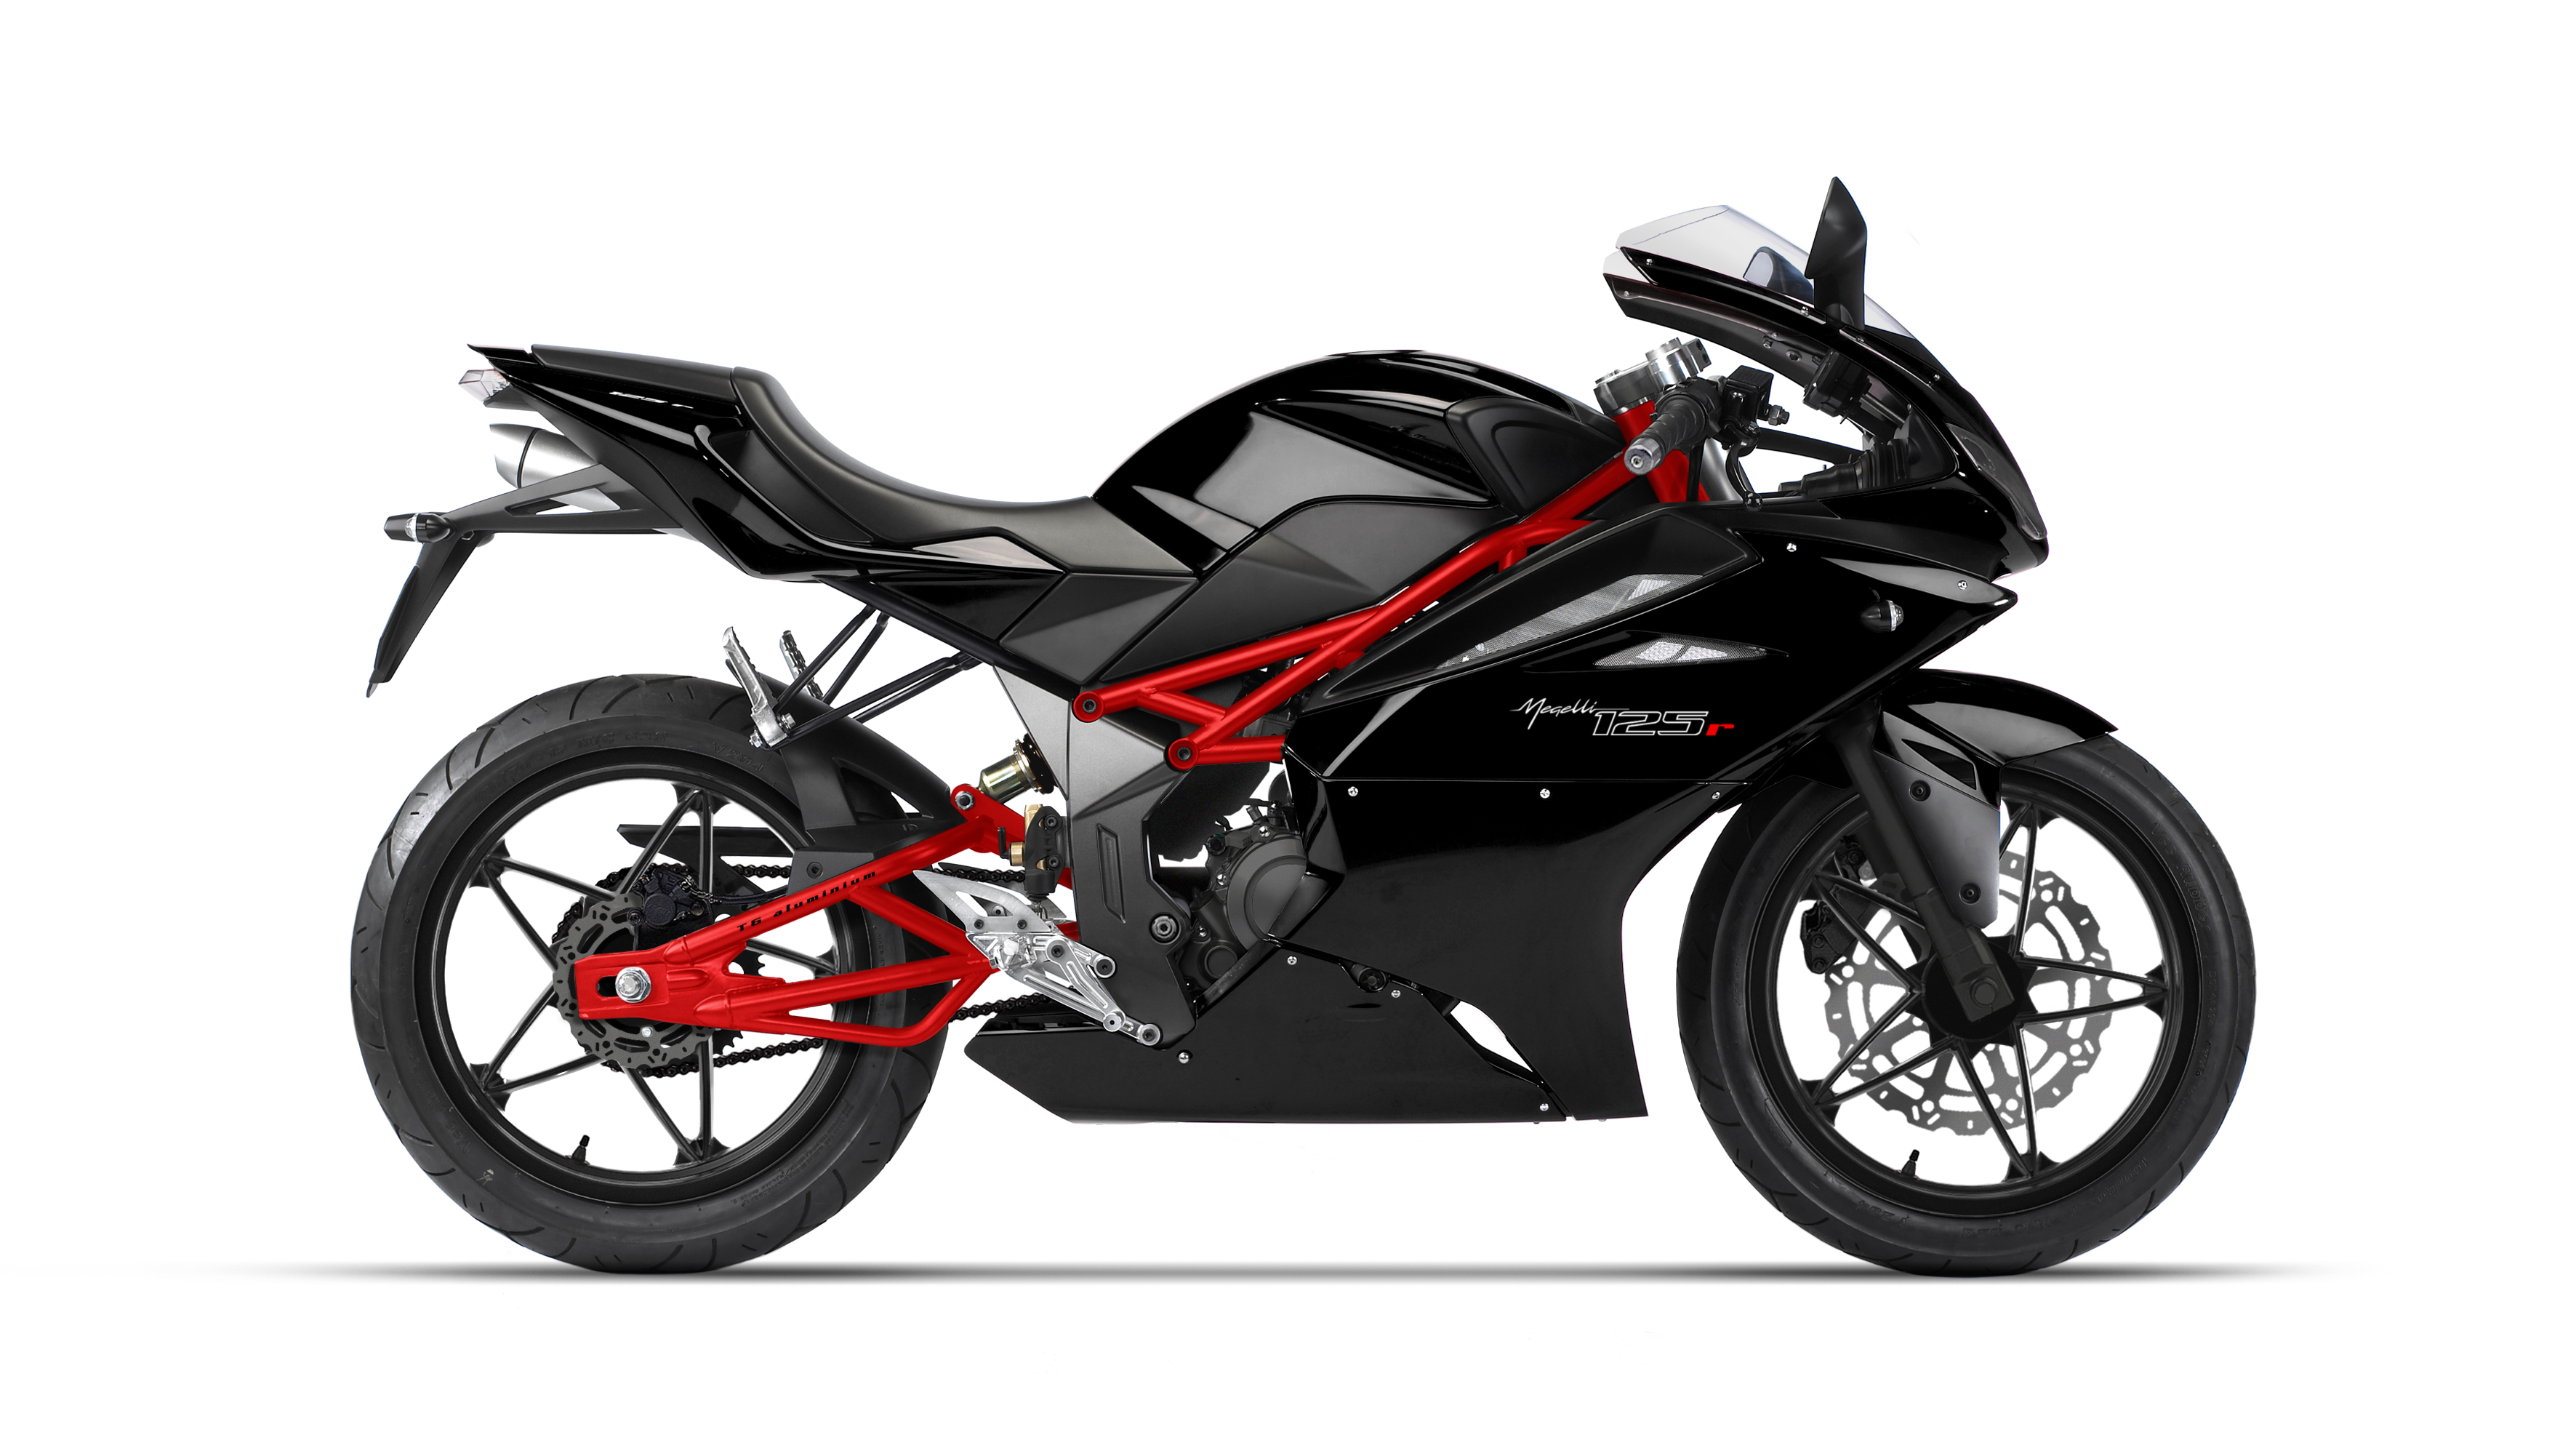 Black and Red Motorcycle Minsk R250 813.62 Kb